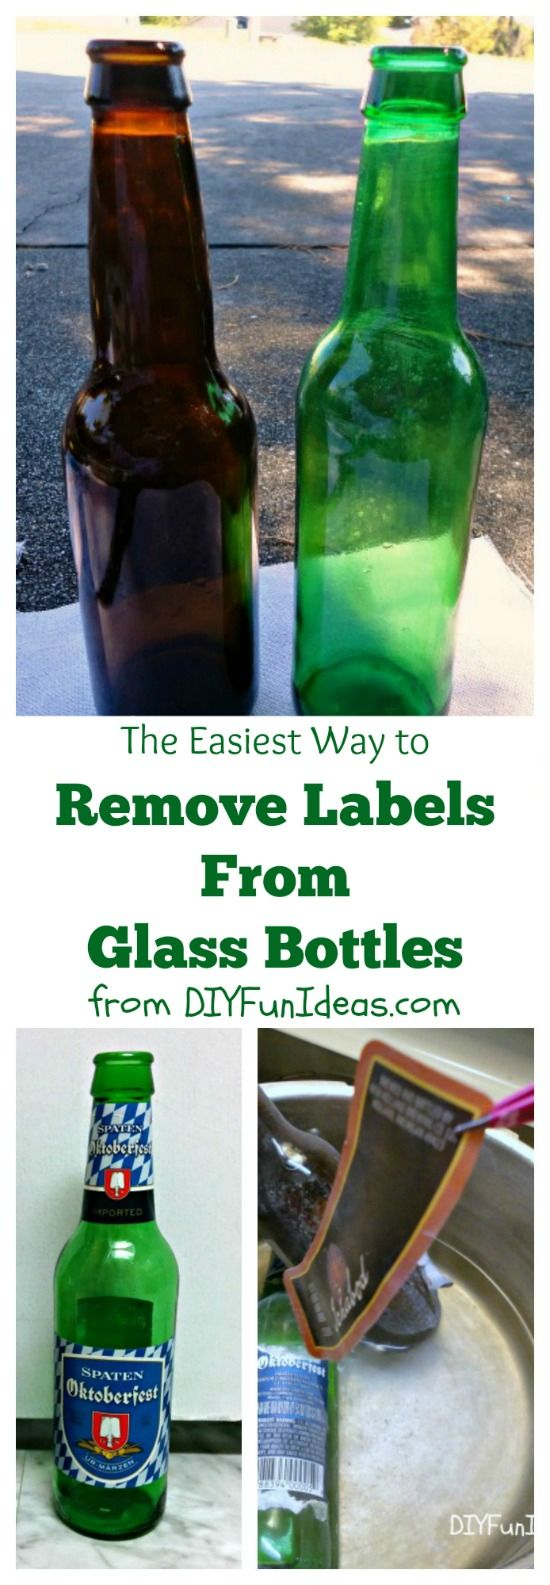 How do you remove stickers from plastic?